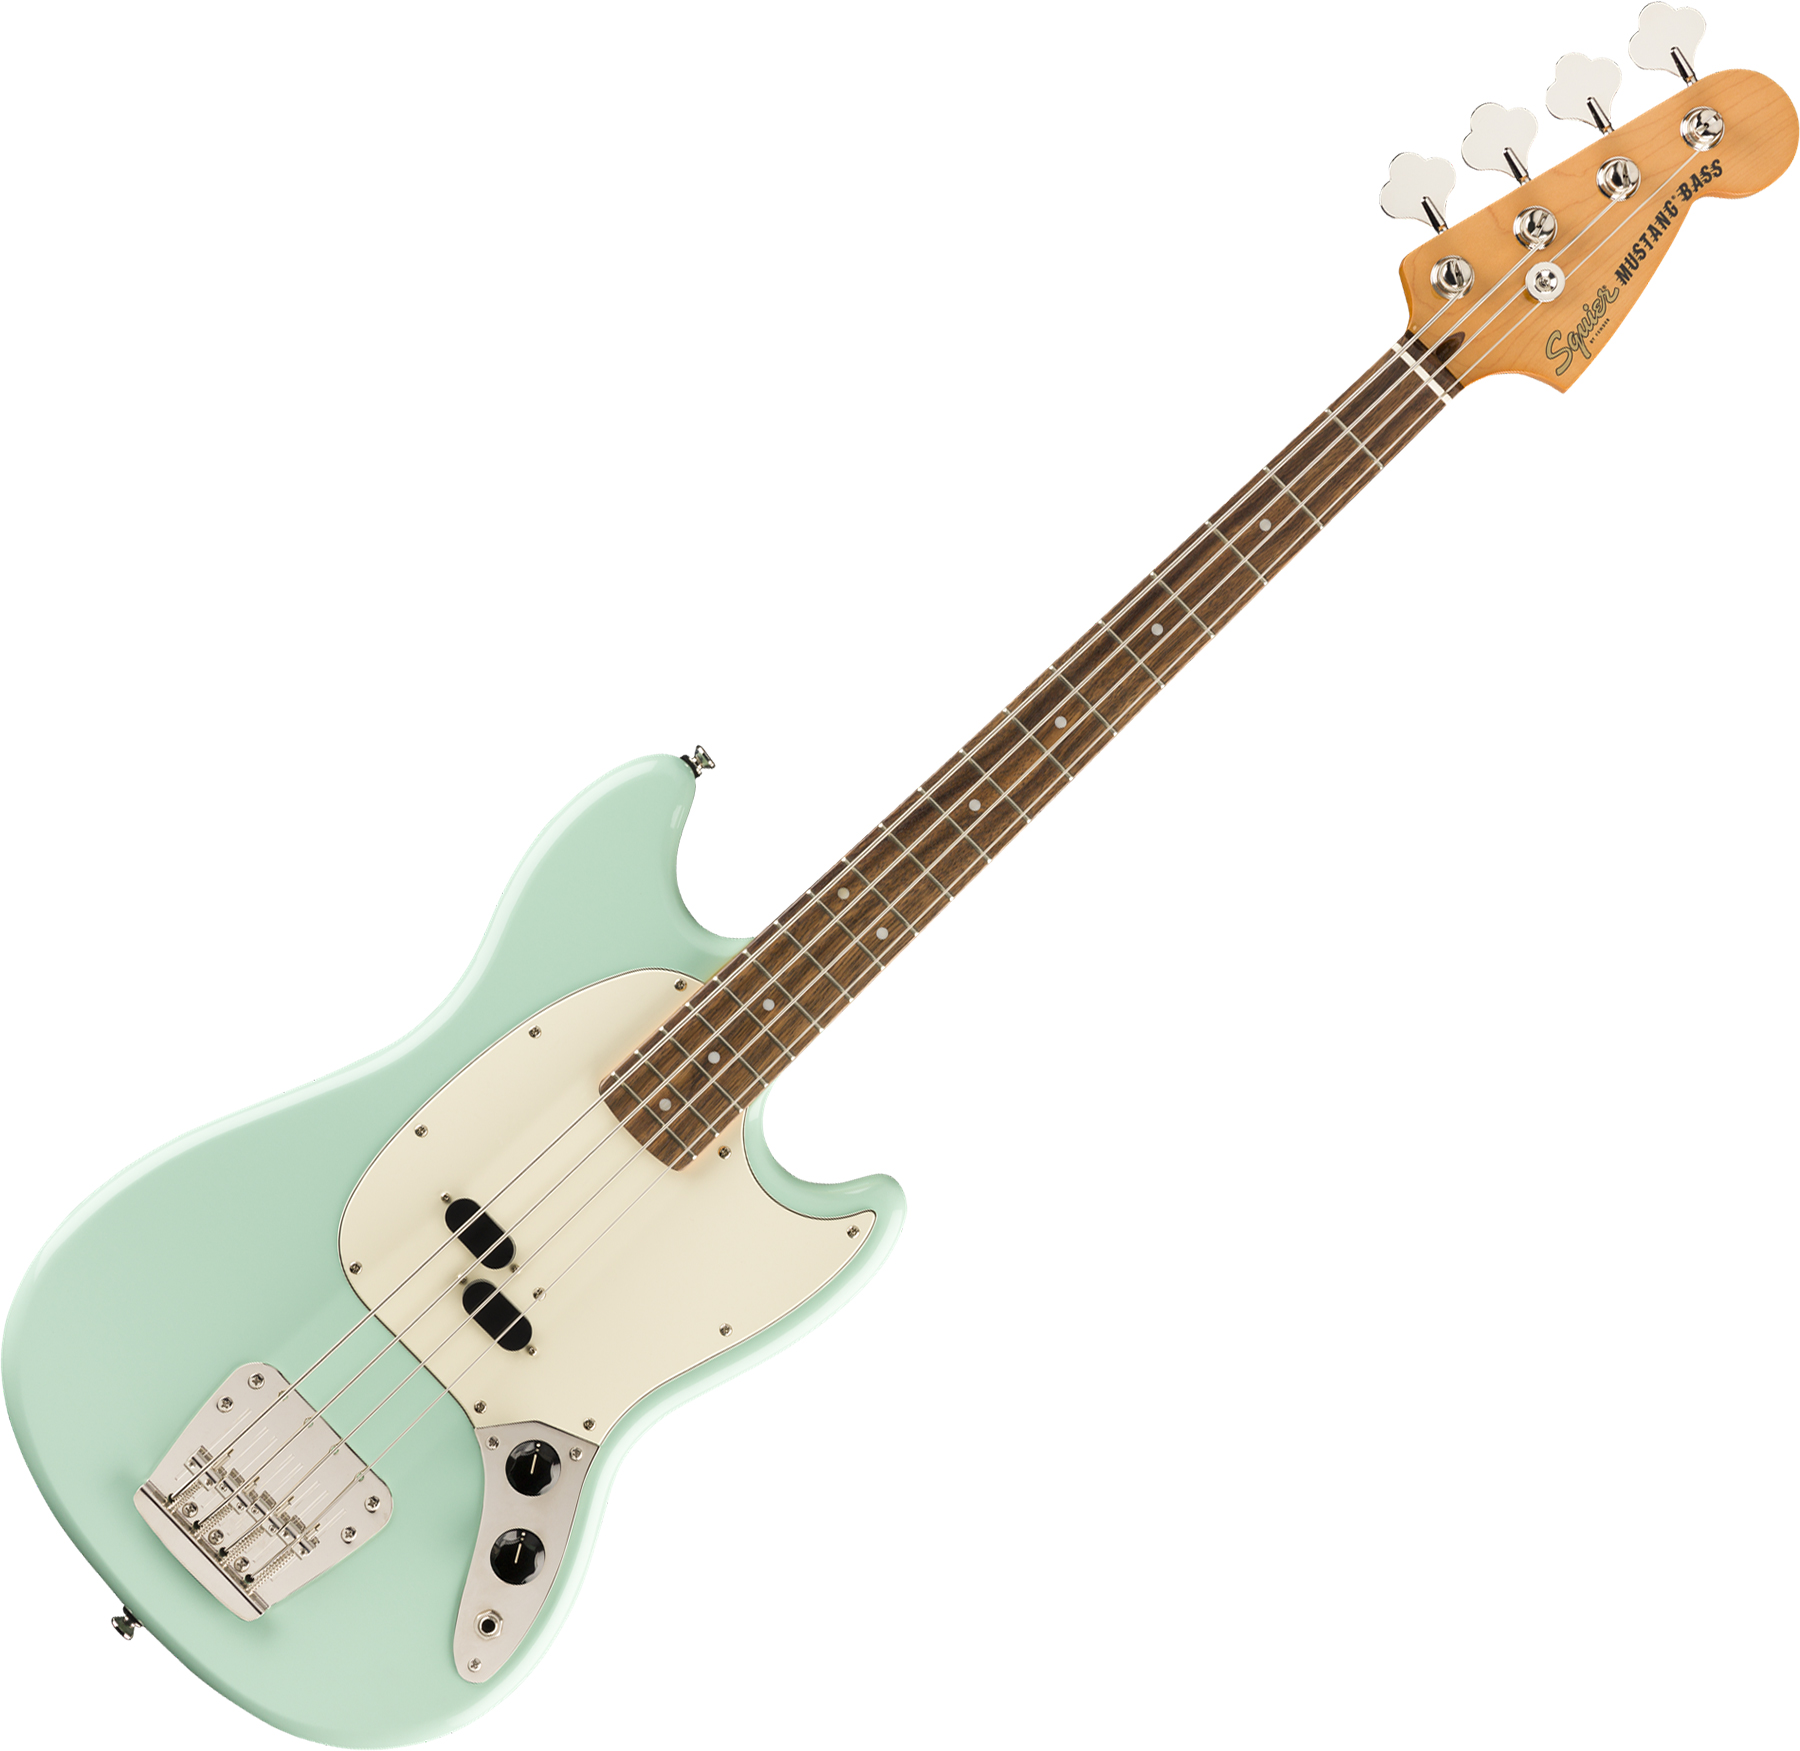 SQUIER Classic Vibe 60s Mustang Bass LF Surf Green  0374570557